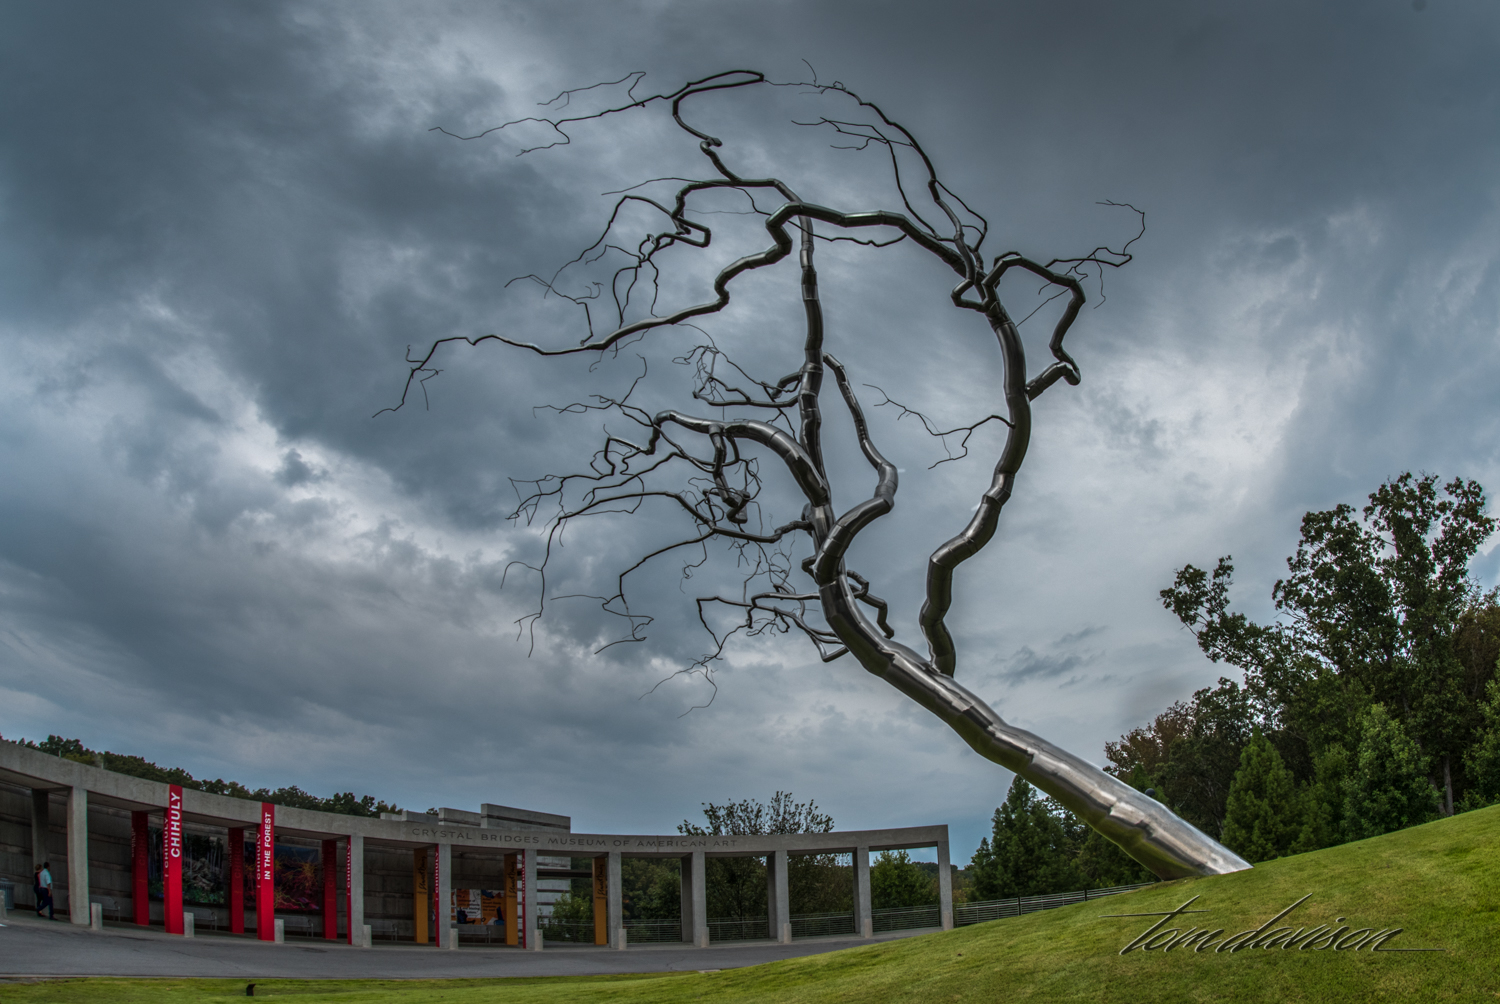 """Visitors are greeted by this incredible 'tree' as they approach the Museum. Sculpted by Roxy Paine, it is one of a series of hand sculpted stainless steel trees. Paine is quoted, """"I'm interested in taking entities that are organic and outside of the industrial realm, feeding them into an industrial system and seeing what results from that force-feeding."""" My feeling was a simple """"WOW""""!"""